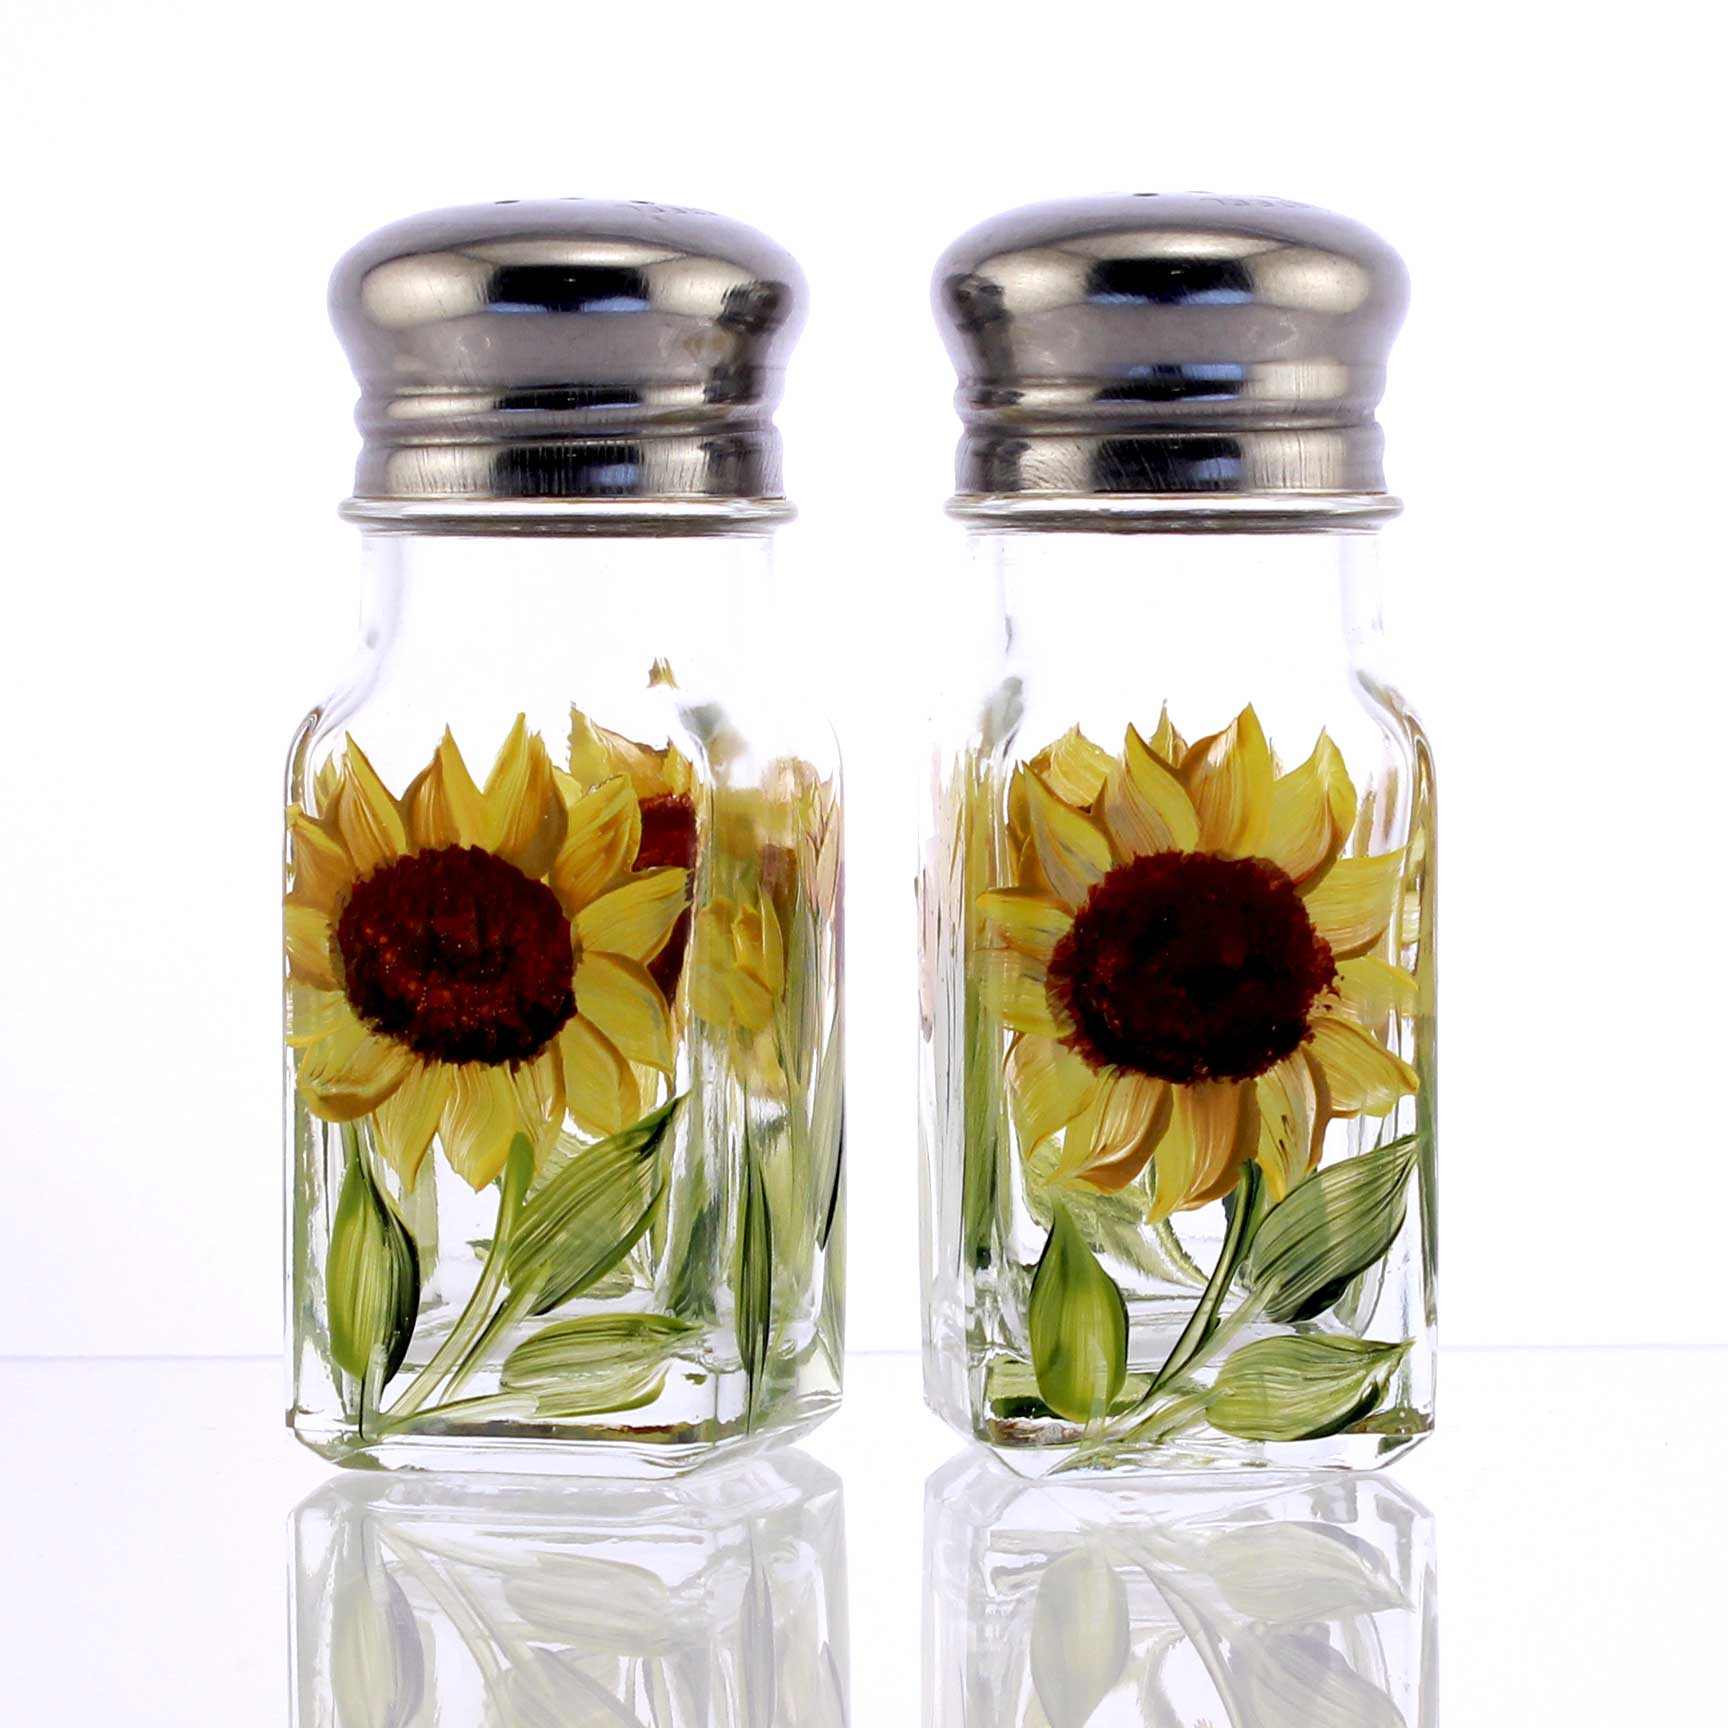 Sunflower Salt And Pepper Shakers Cheaper Than Retail Price Buy Clothing Accessories And Lifestyle Products For Women Men